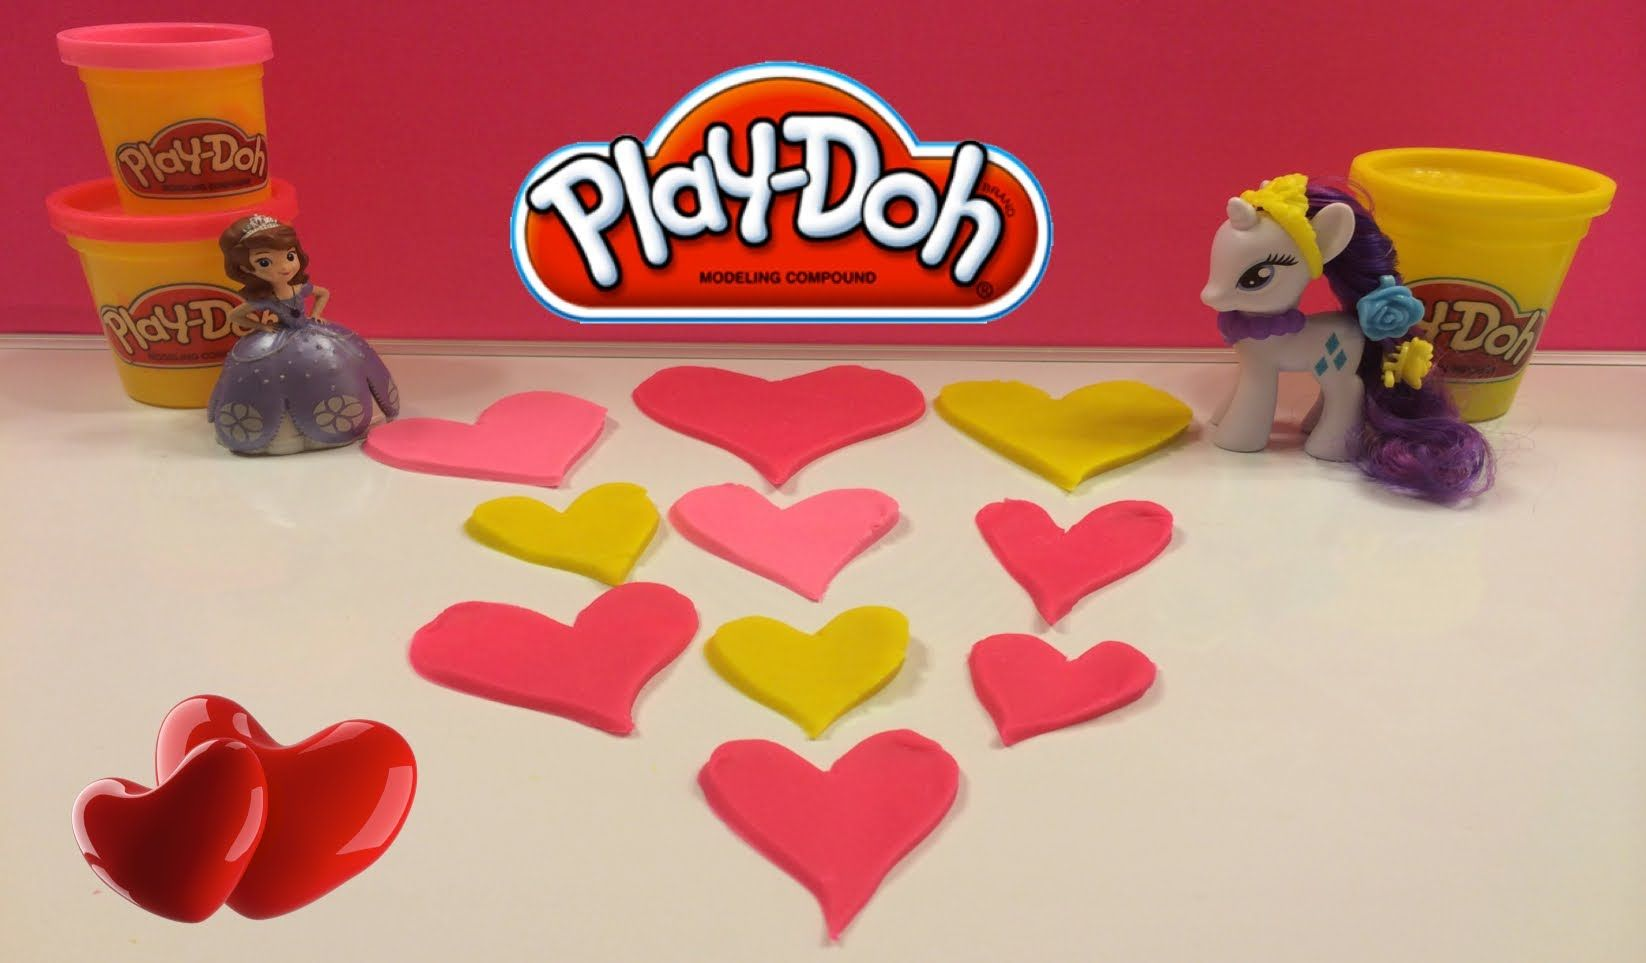 Play Doh Pink & Red Valentine's Hearts with My Little Pony Rarity & Disn...  -- create play doh hearts for your mommy, daddy, brothers, sisters, grandma, grandpa ...